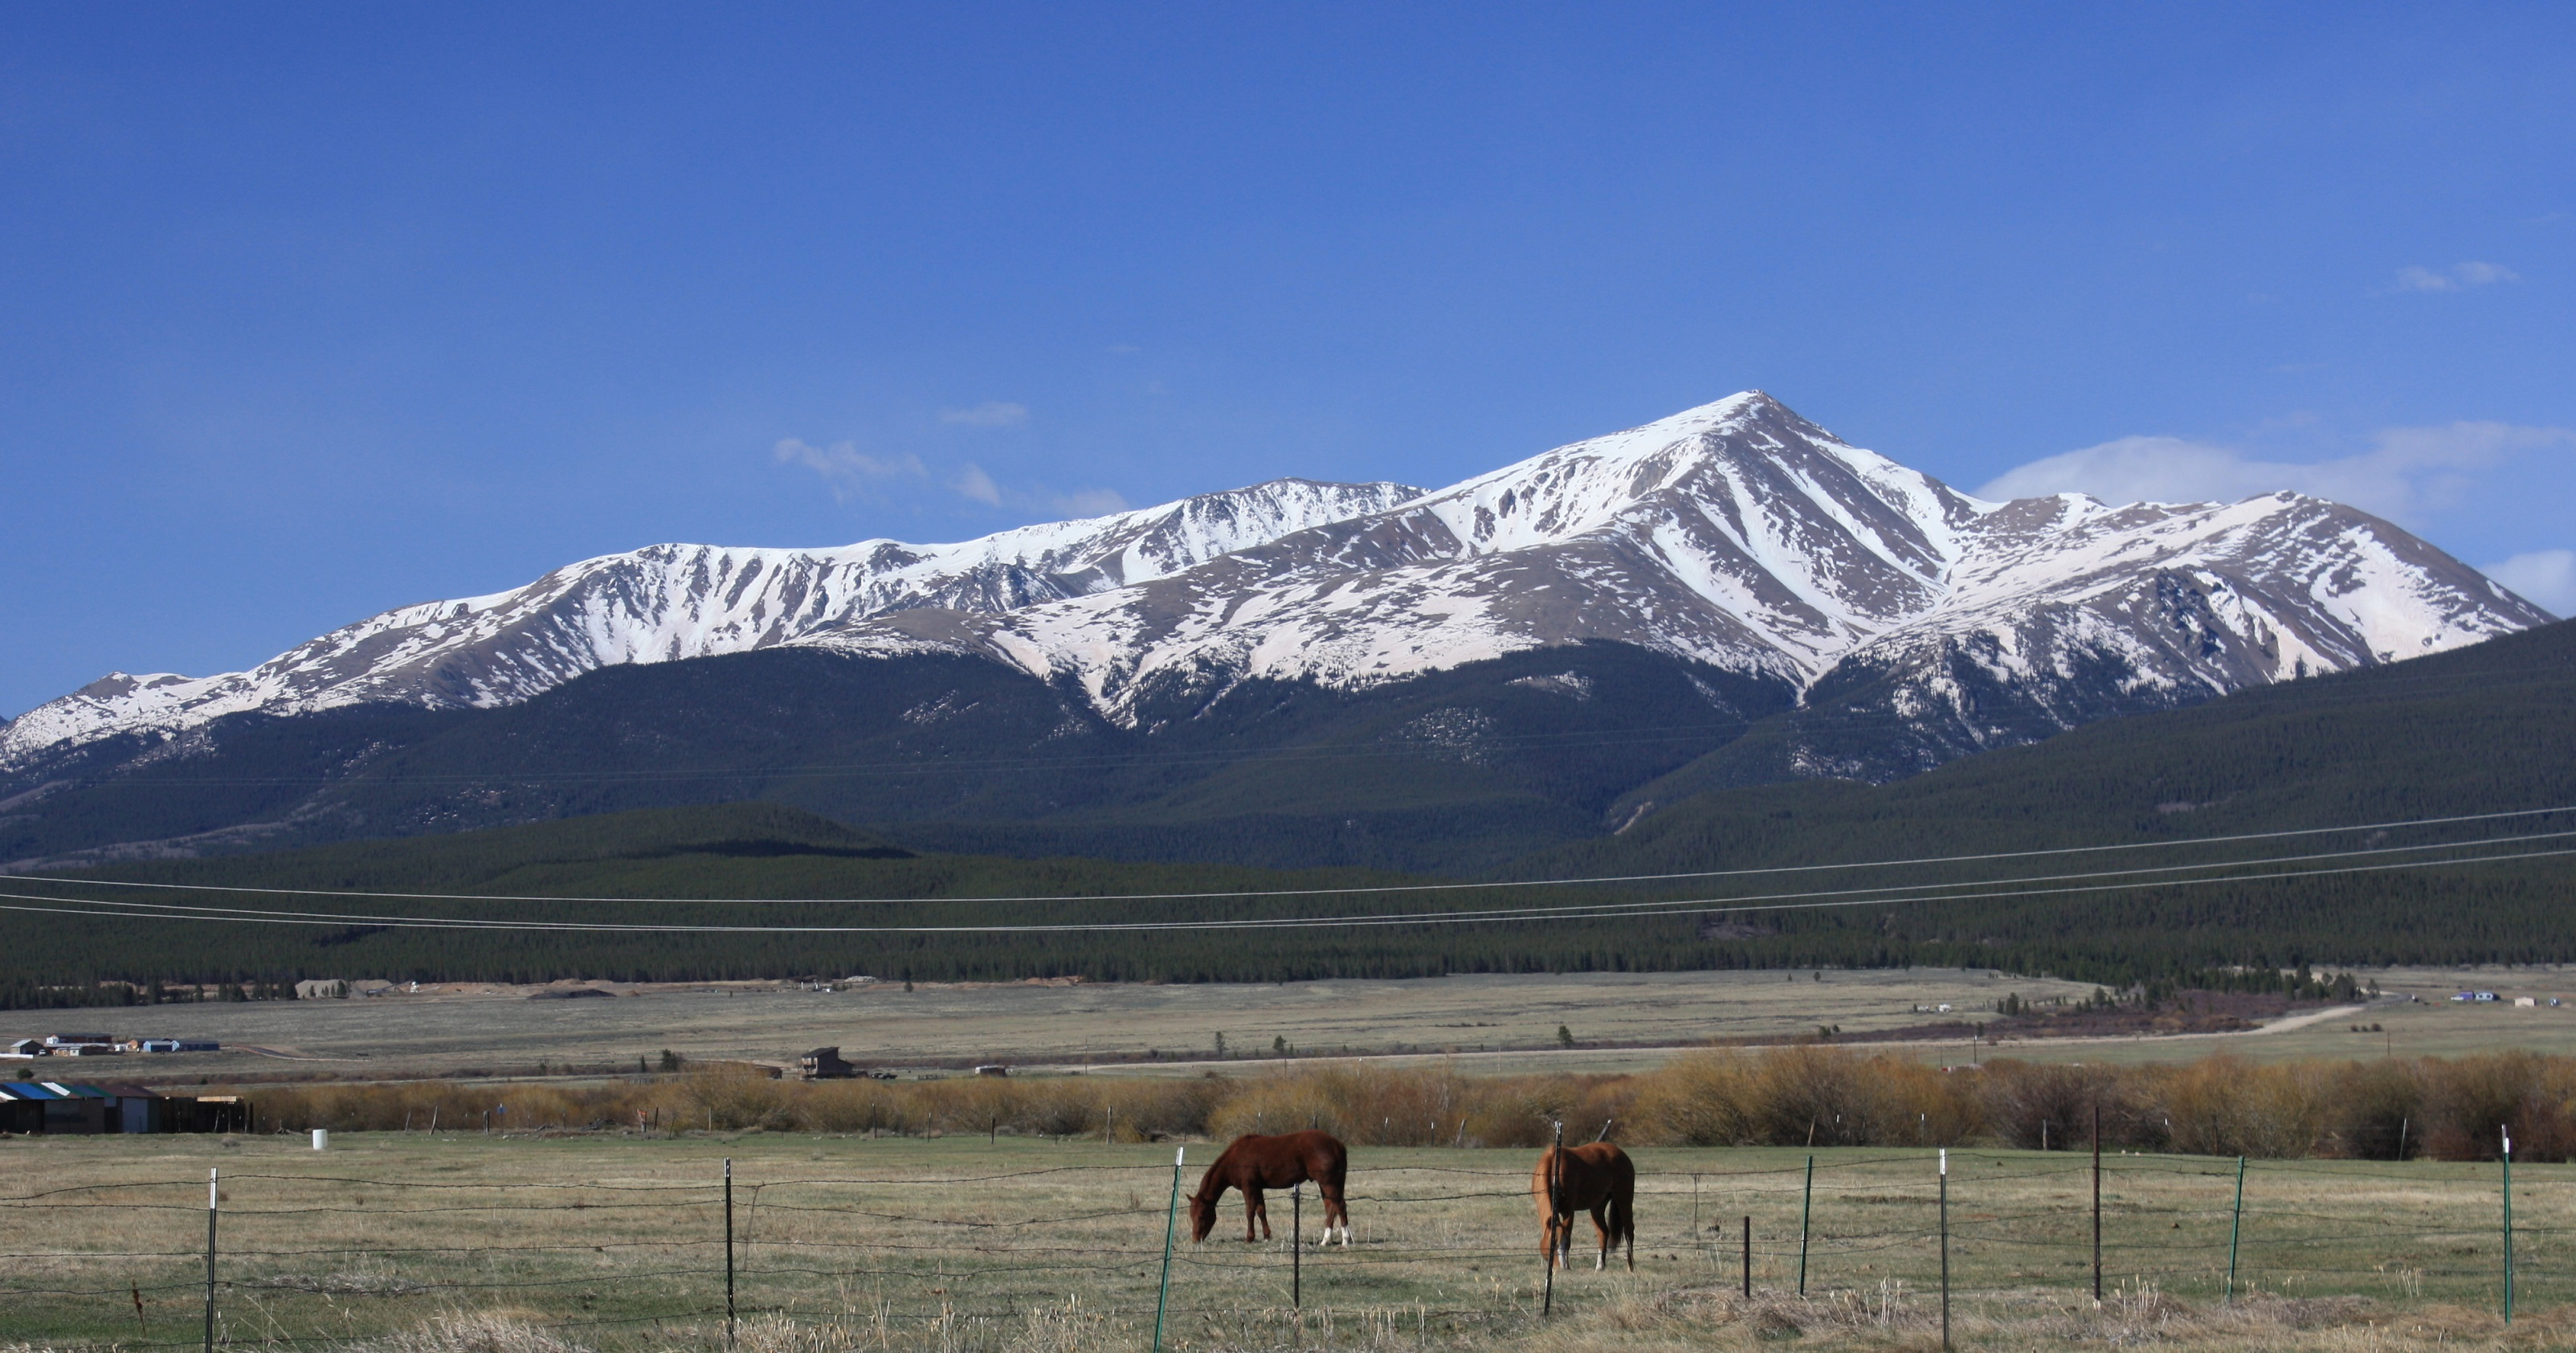 Mount_Elbert_ the tallest in Colorado and Rocky Mountains